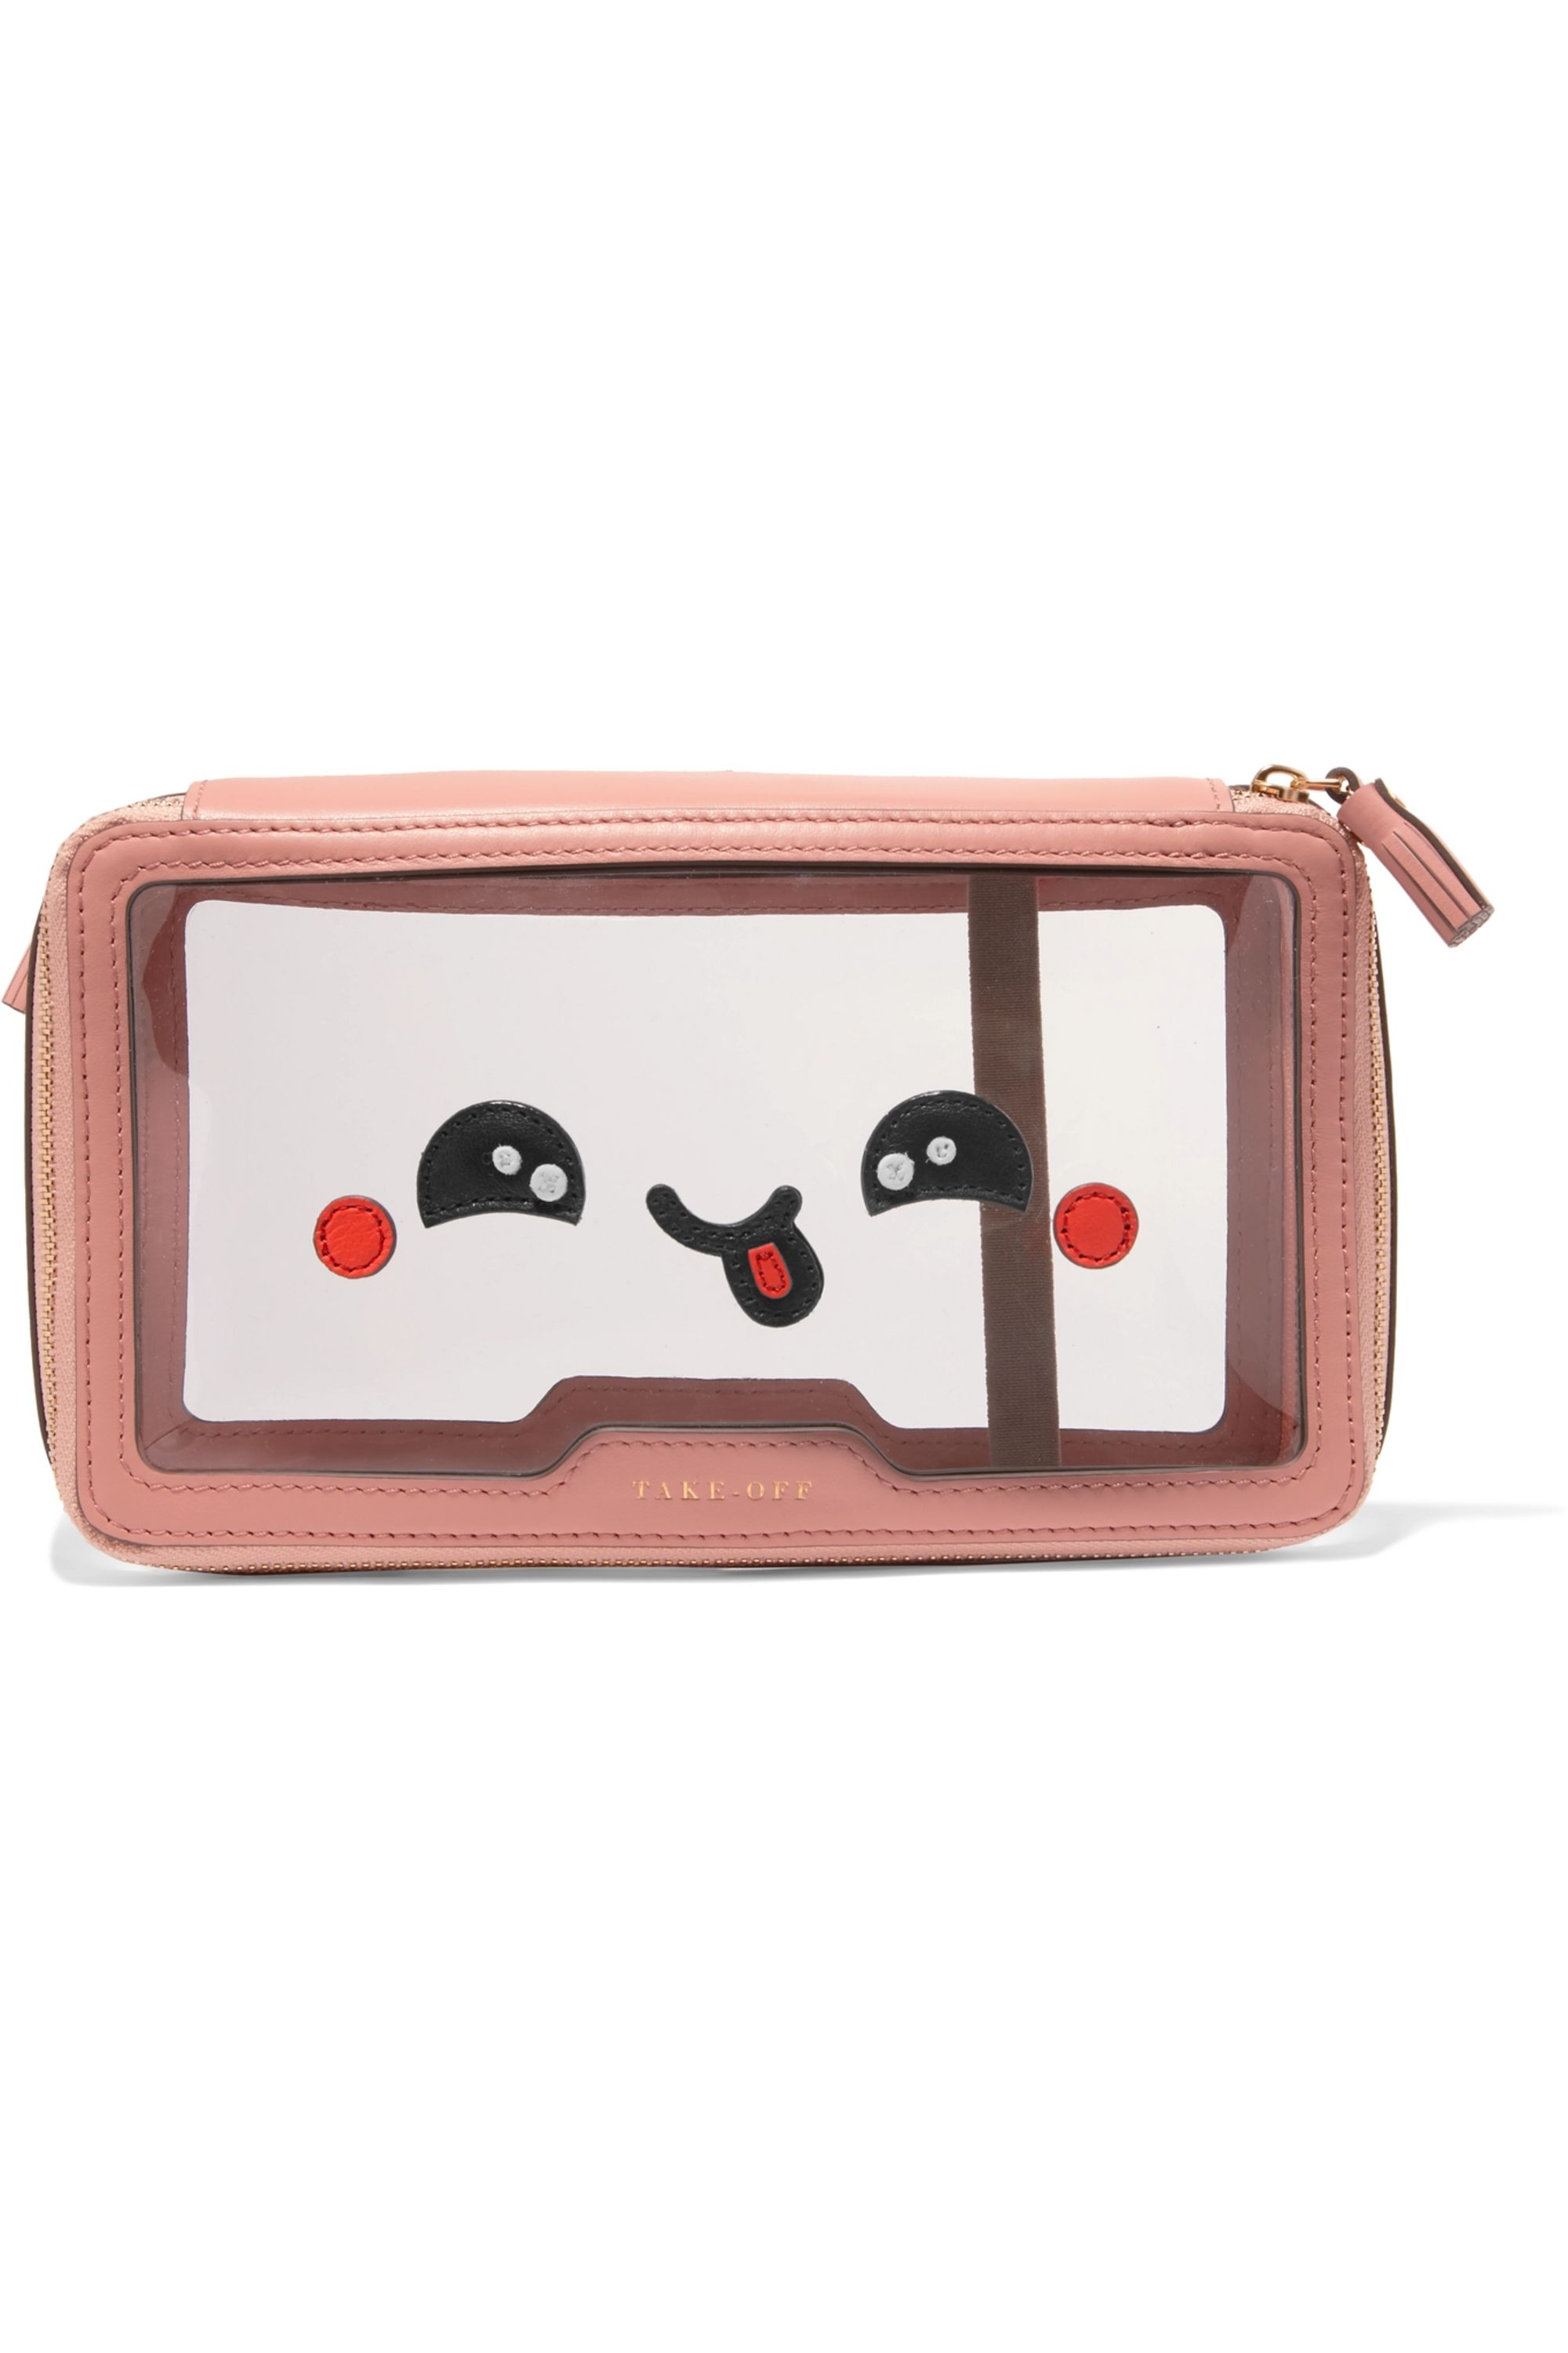 Anya Hindmarch In Flight Kawaii leather-trimmed travel case